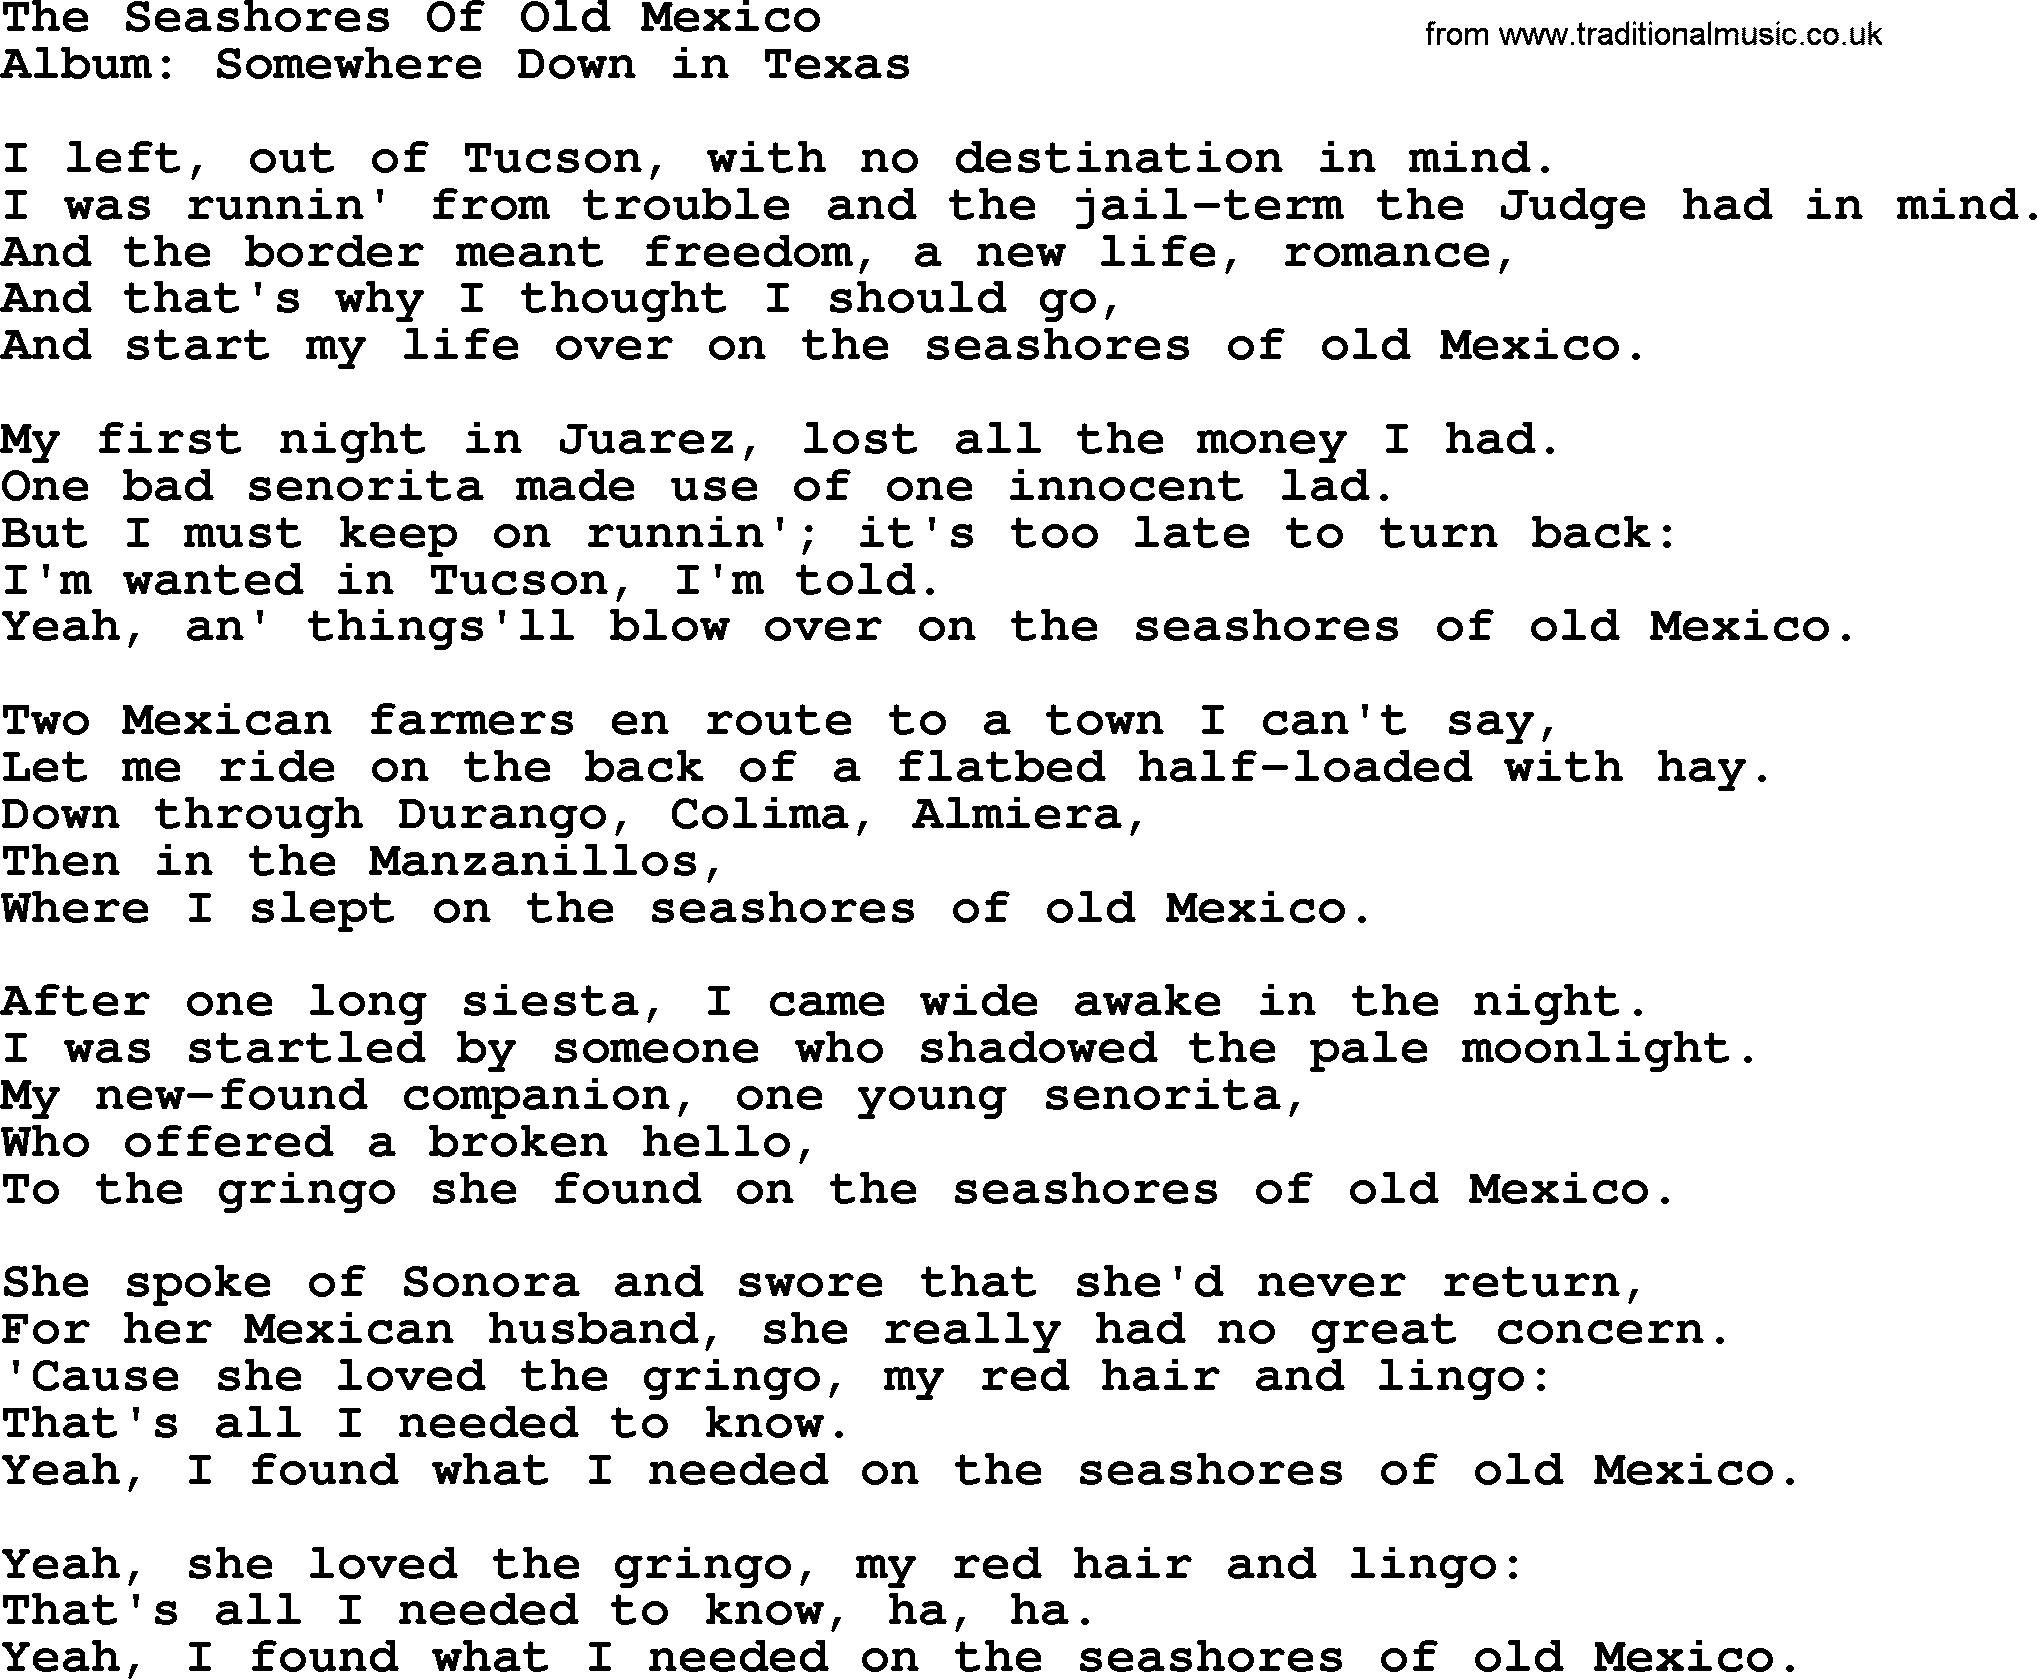 The Seashores Of Old Mexico By George Strait Lyrics